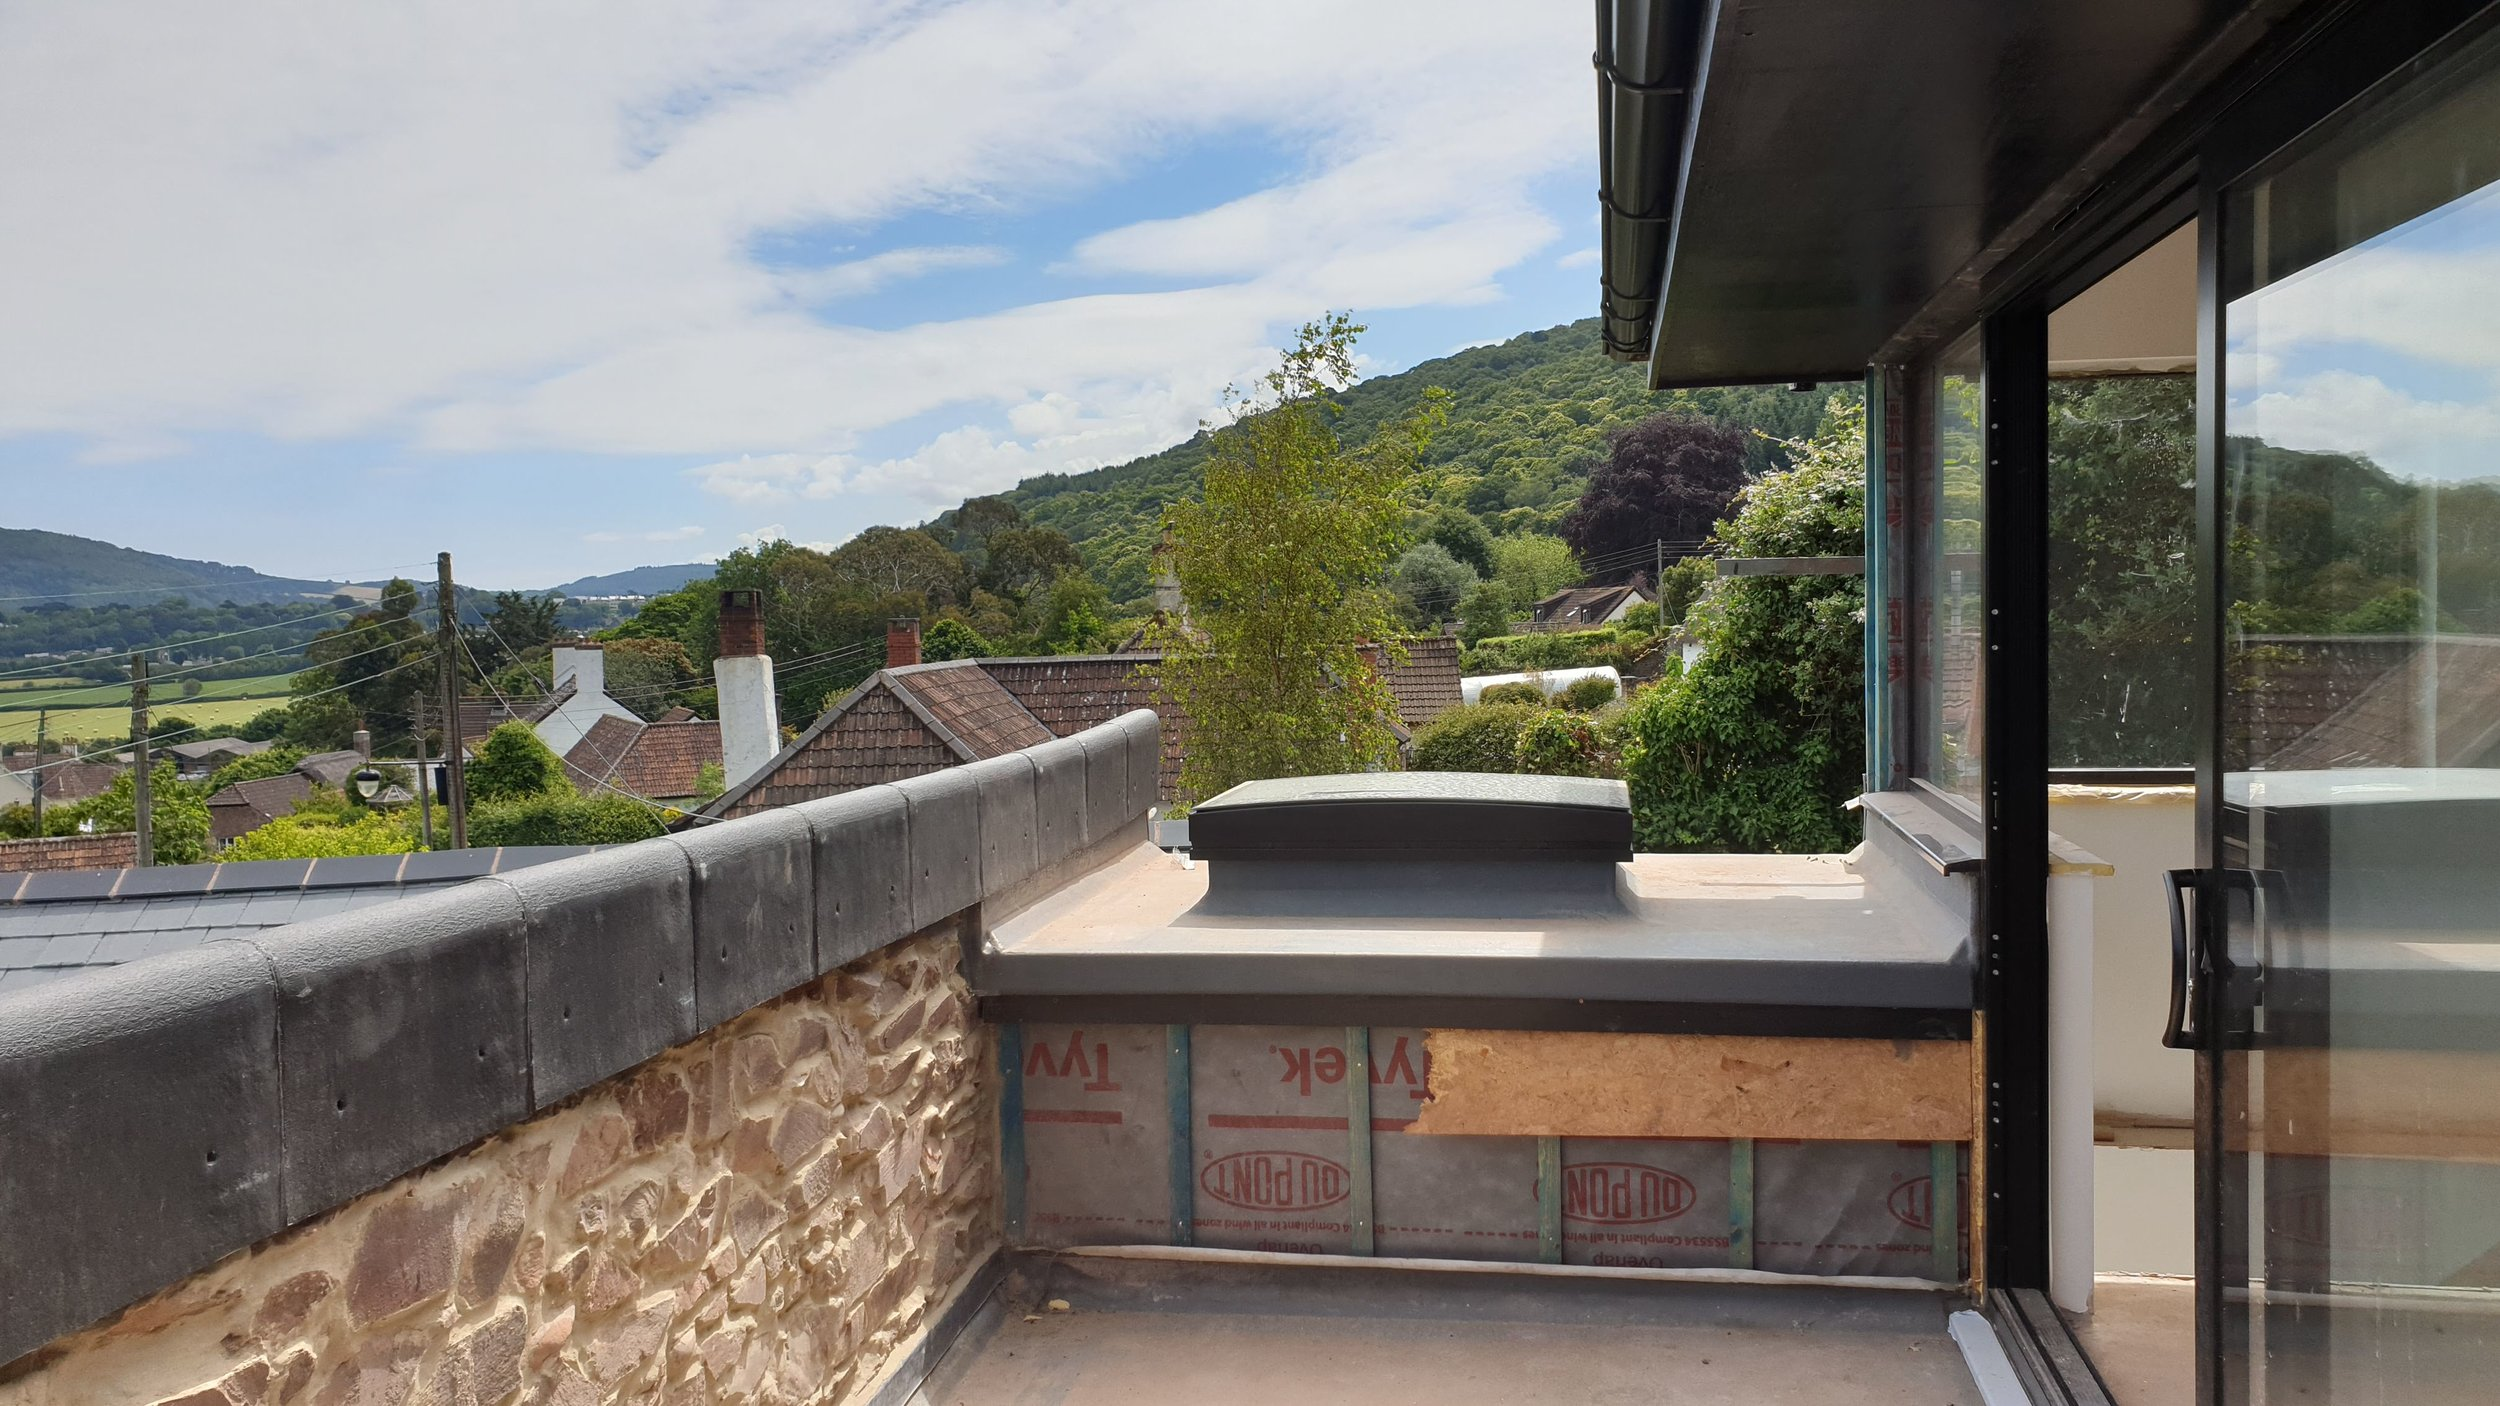 forge-planning-approval-exmoor-nick-thorne-balcony